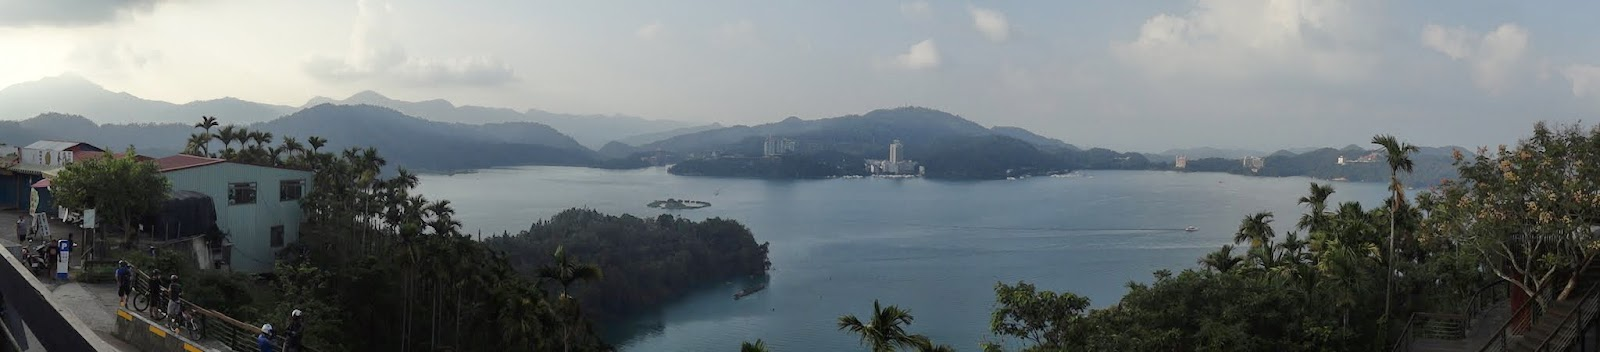 Breathtaking panorama viewe of Sun Moon Lake and Lalu Island from Xuanzang Temple at Nantou County of Taiwan